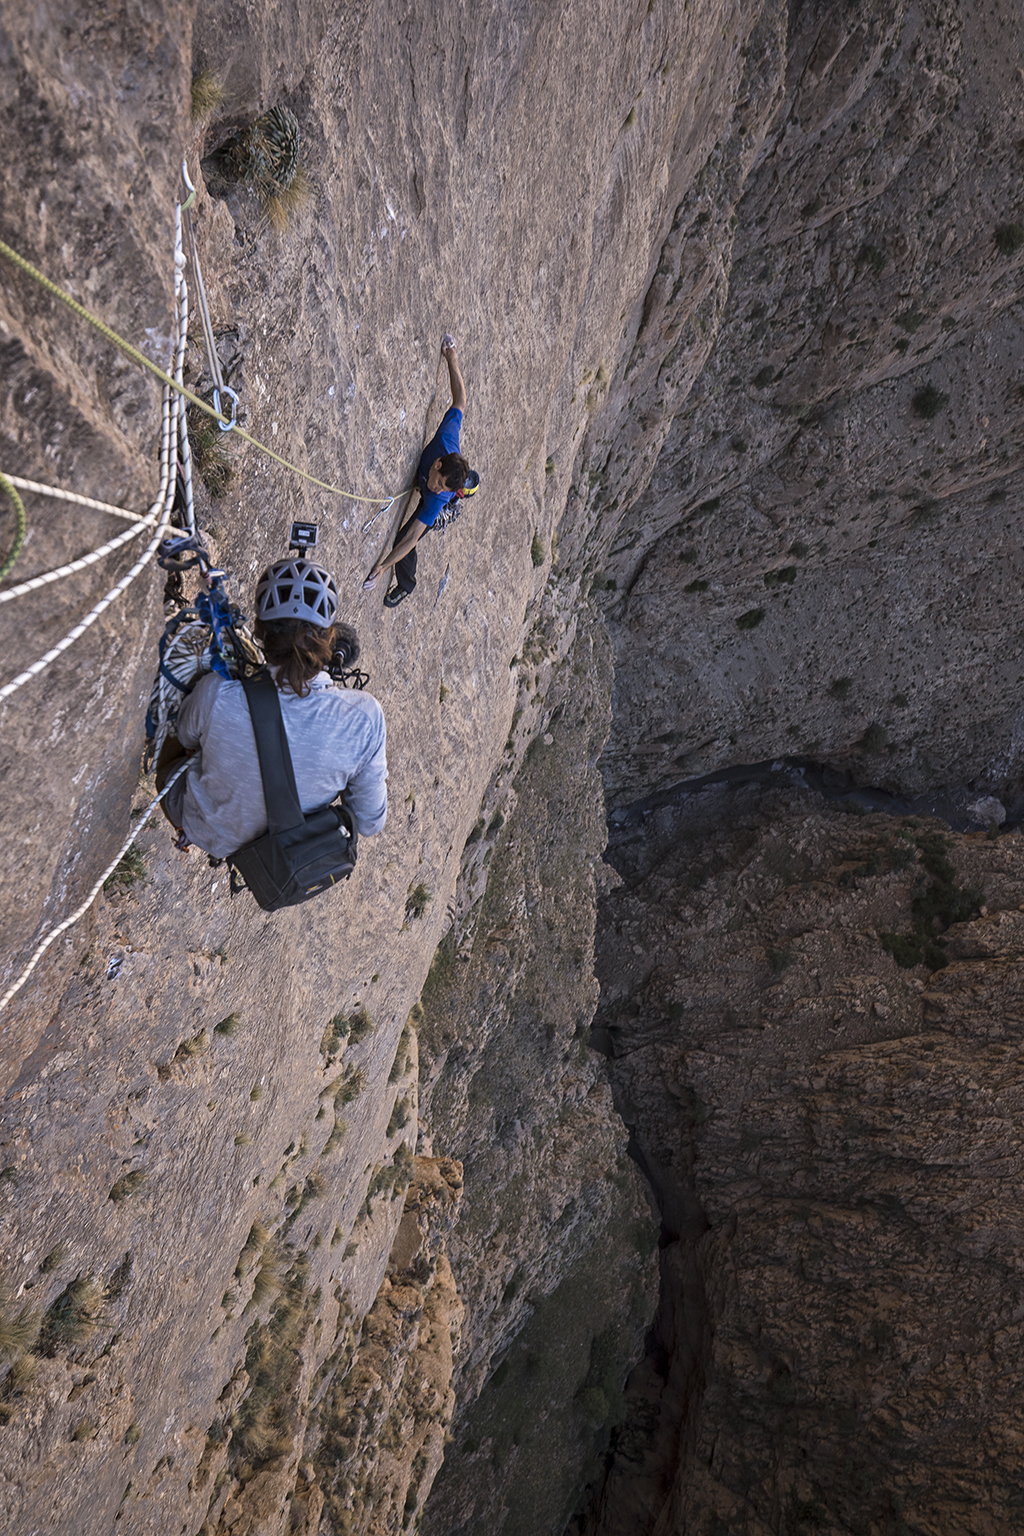 How Jimmy Chin Filmed A Mountaineer Who Aspires To Extremes